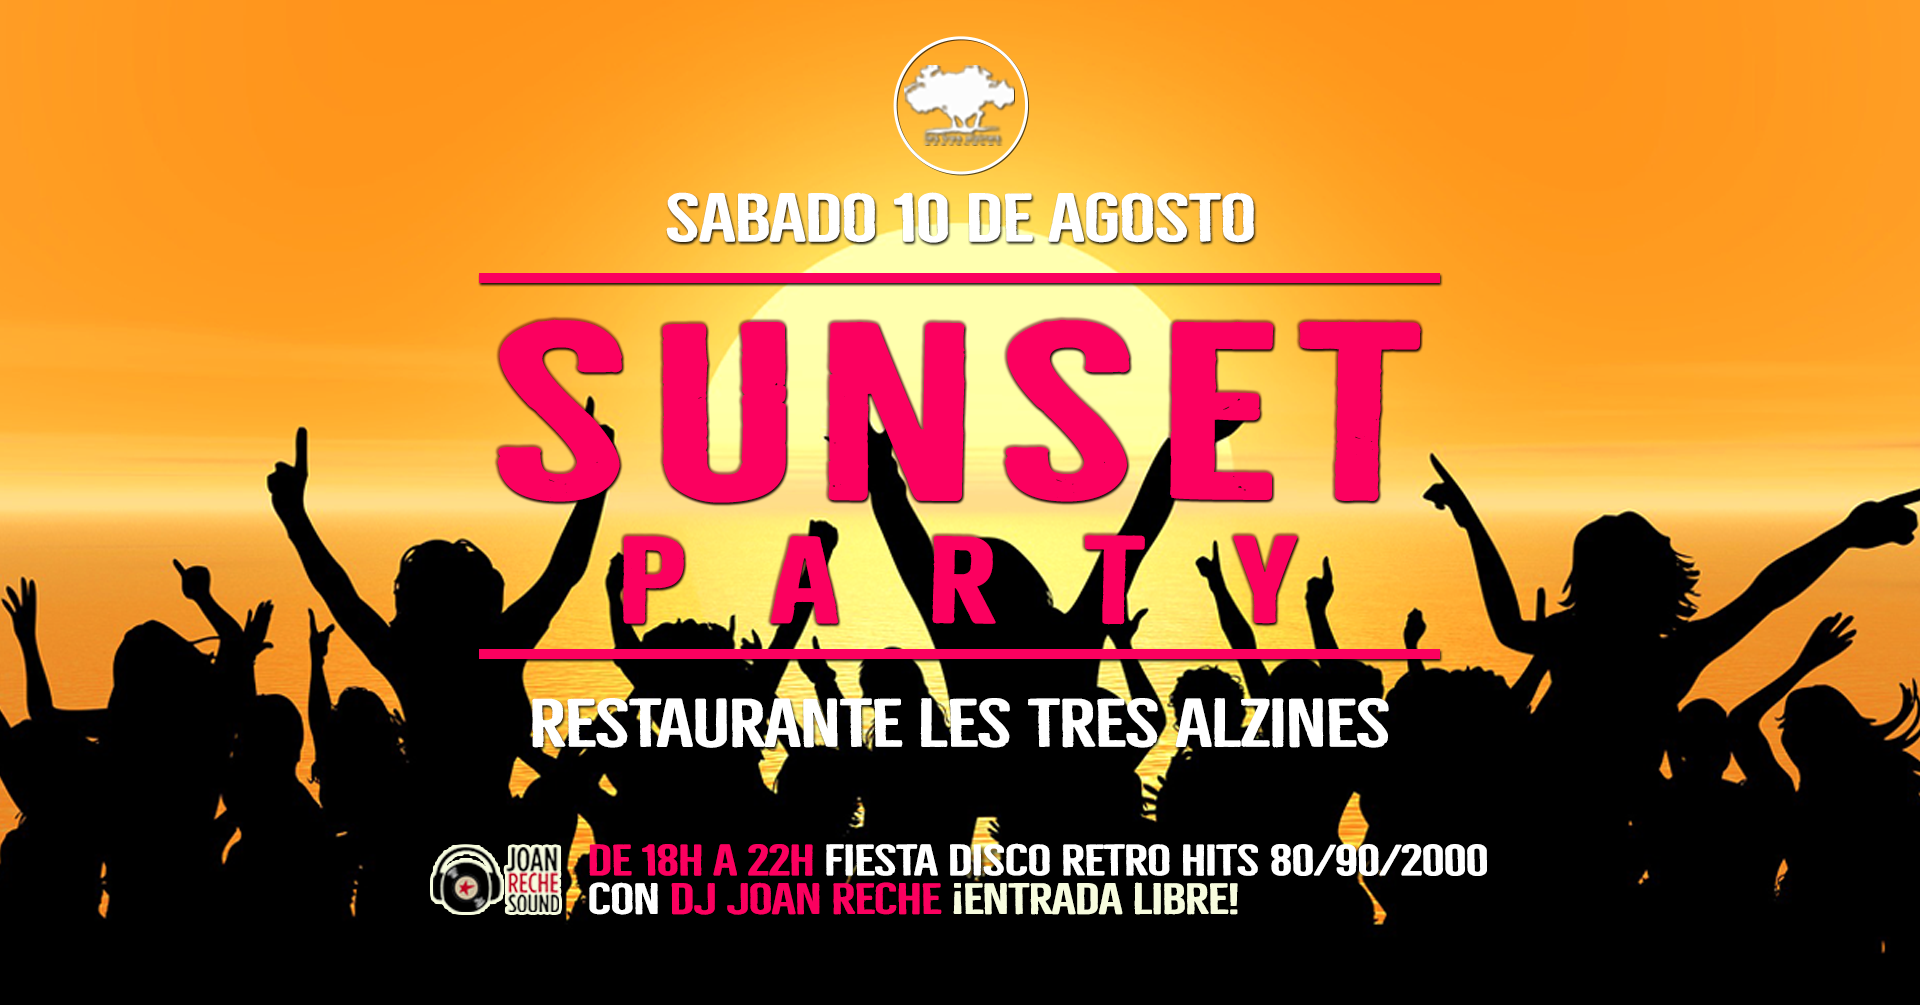 Restaurante braseria en La Roca Village - Les Tres Alzines - Sunset party | 10 de Agosto 2019